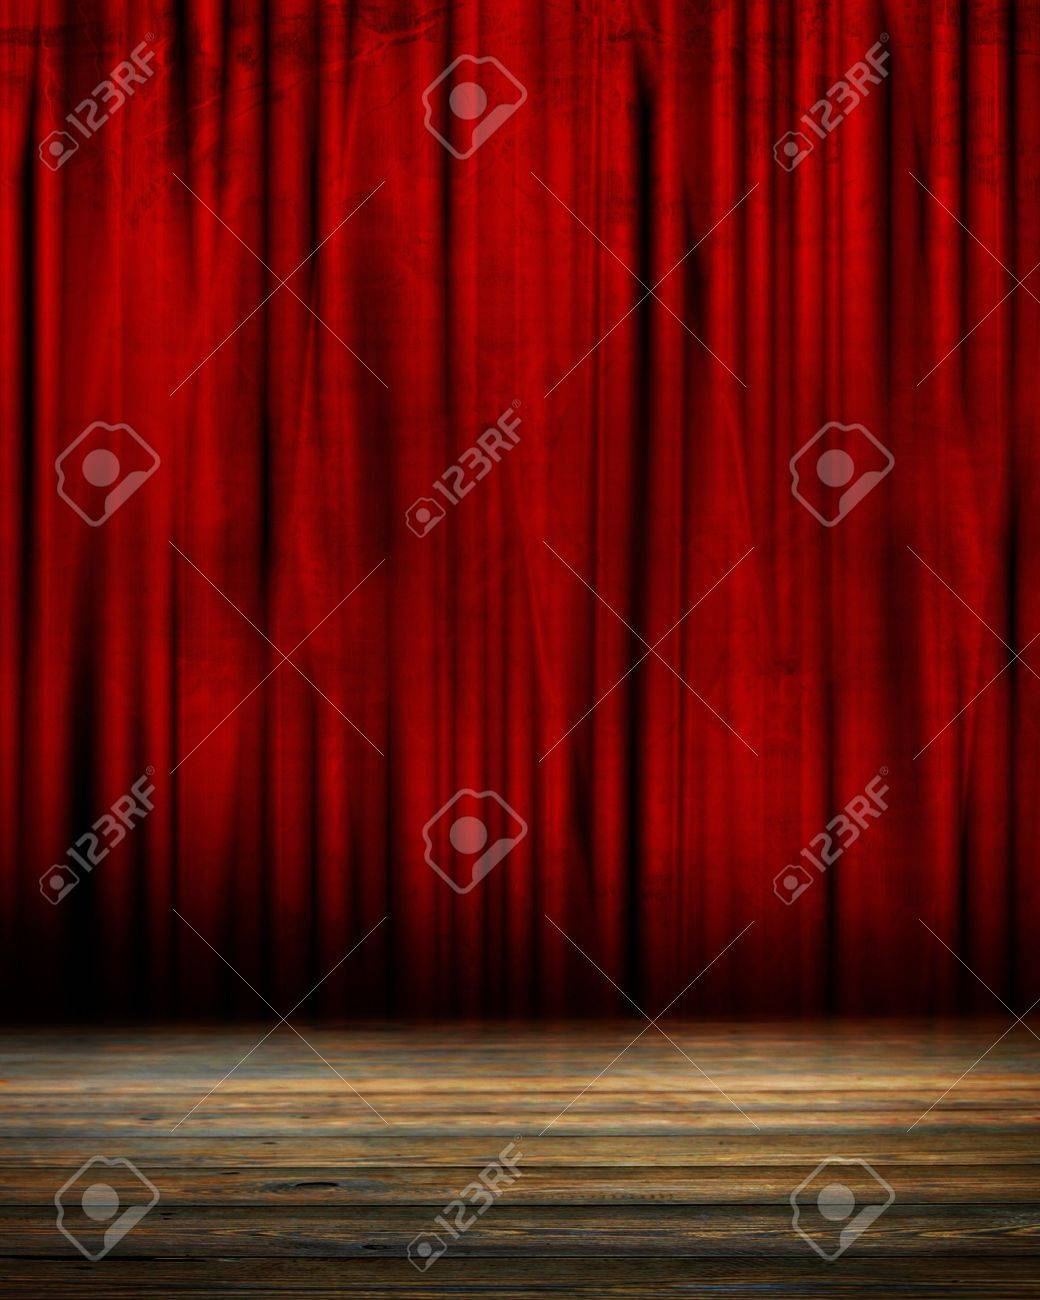 Movie or theater curtain with soft shades Stock Photo - 15140072